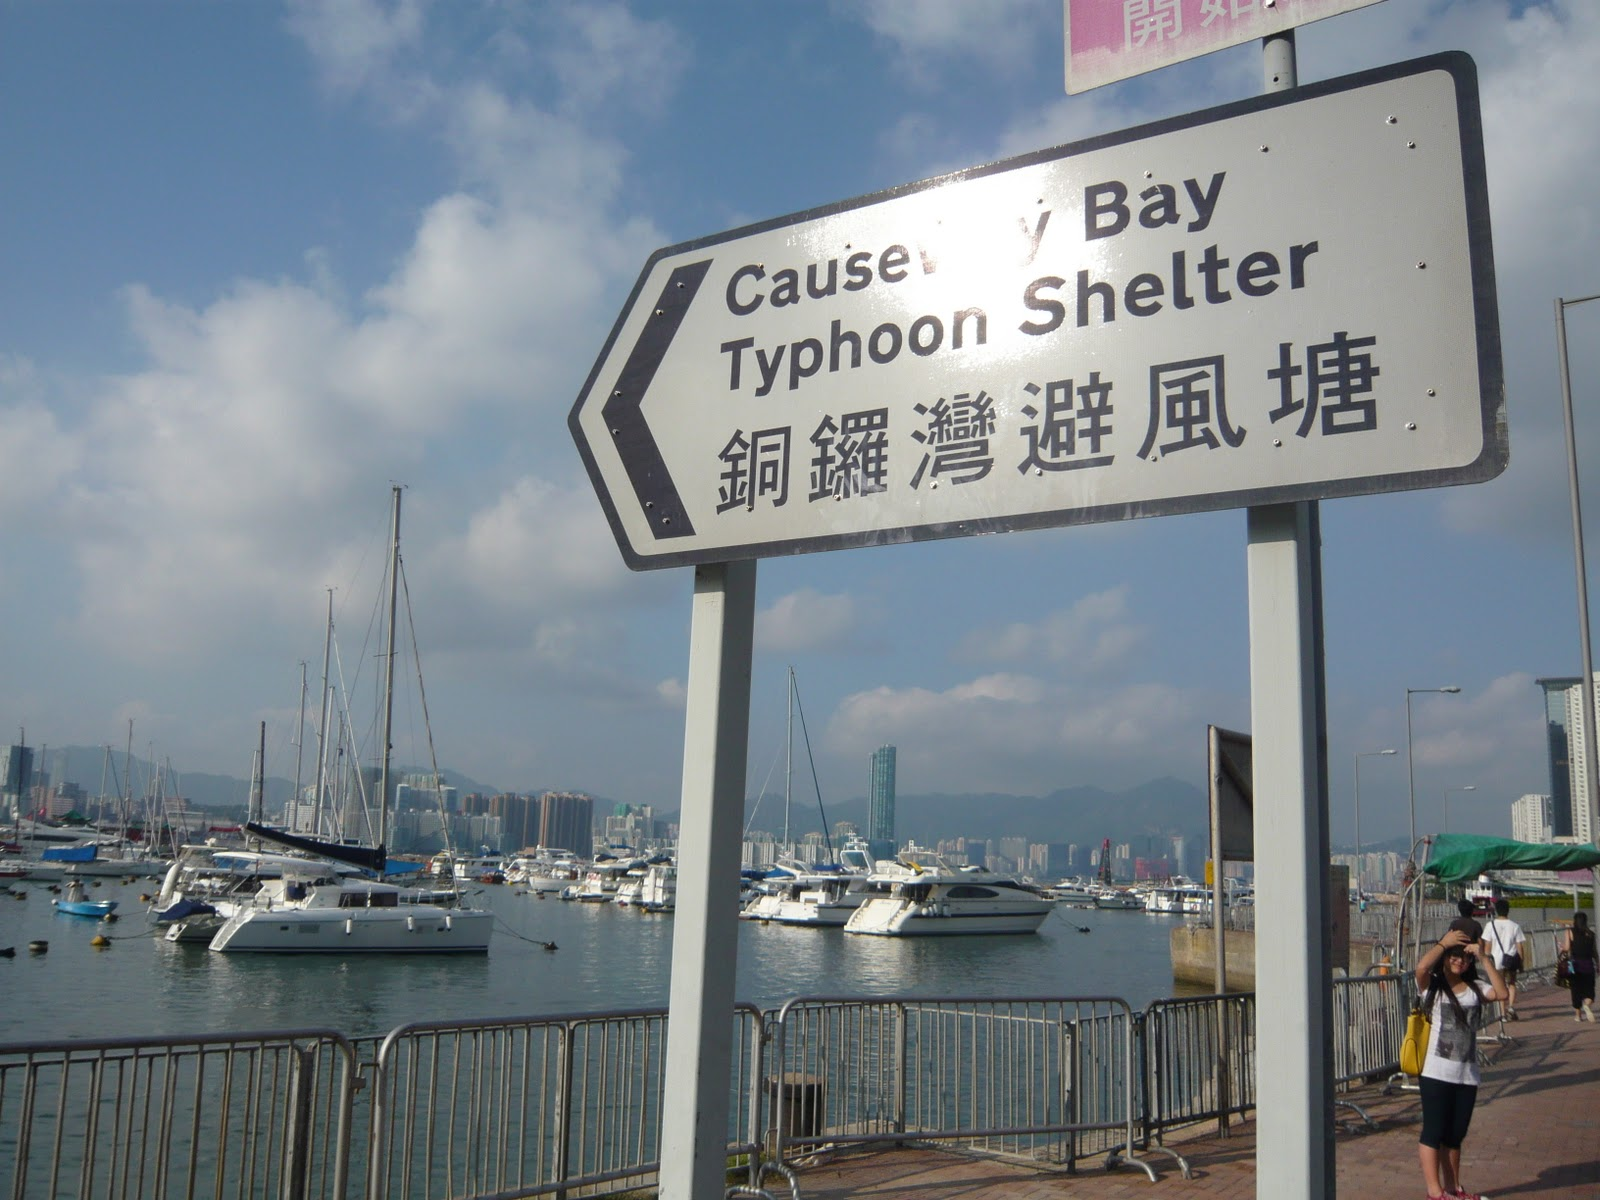 Boats to steer clear of works in Causeway Bay typhoon shelter